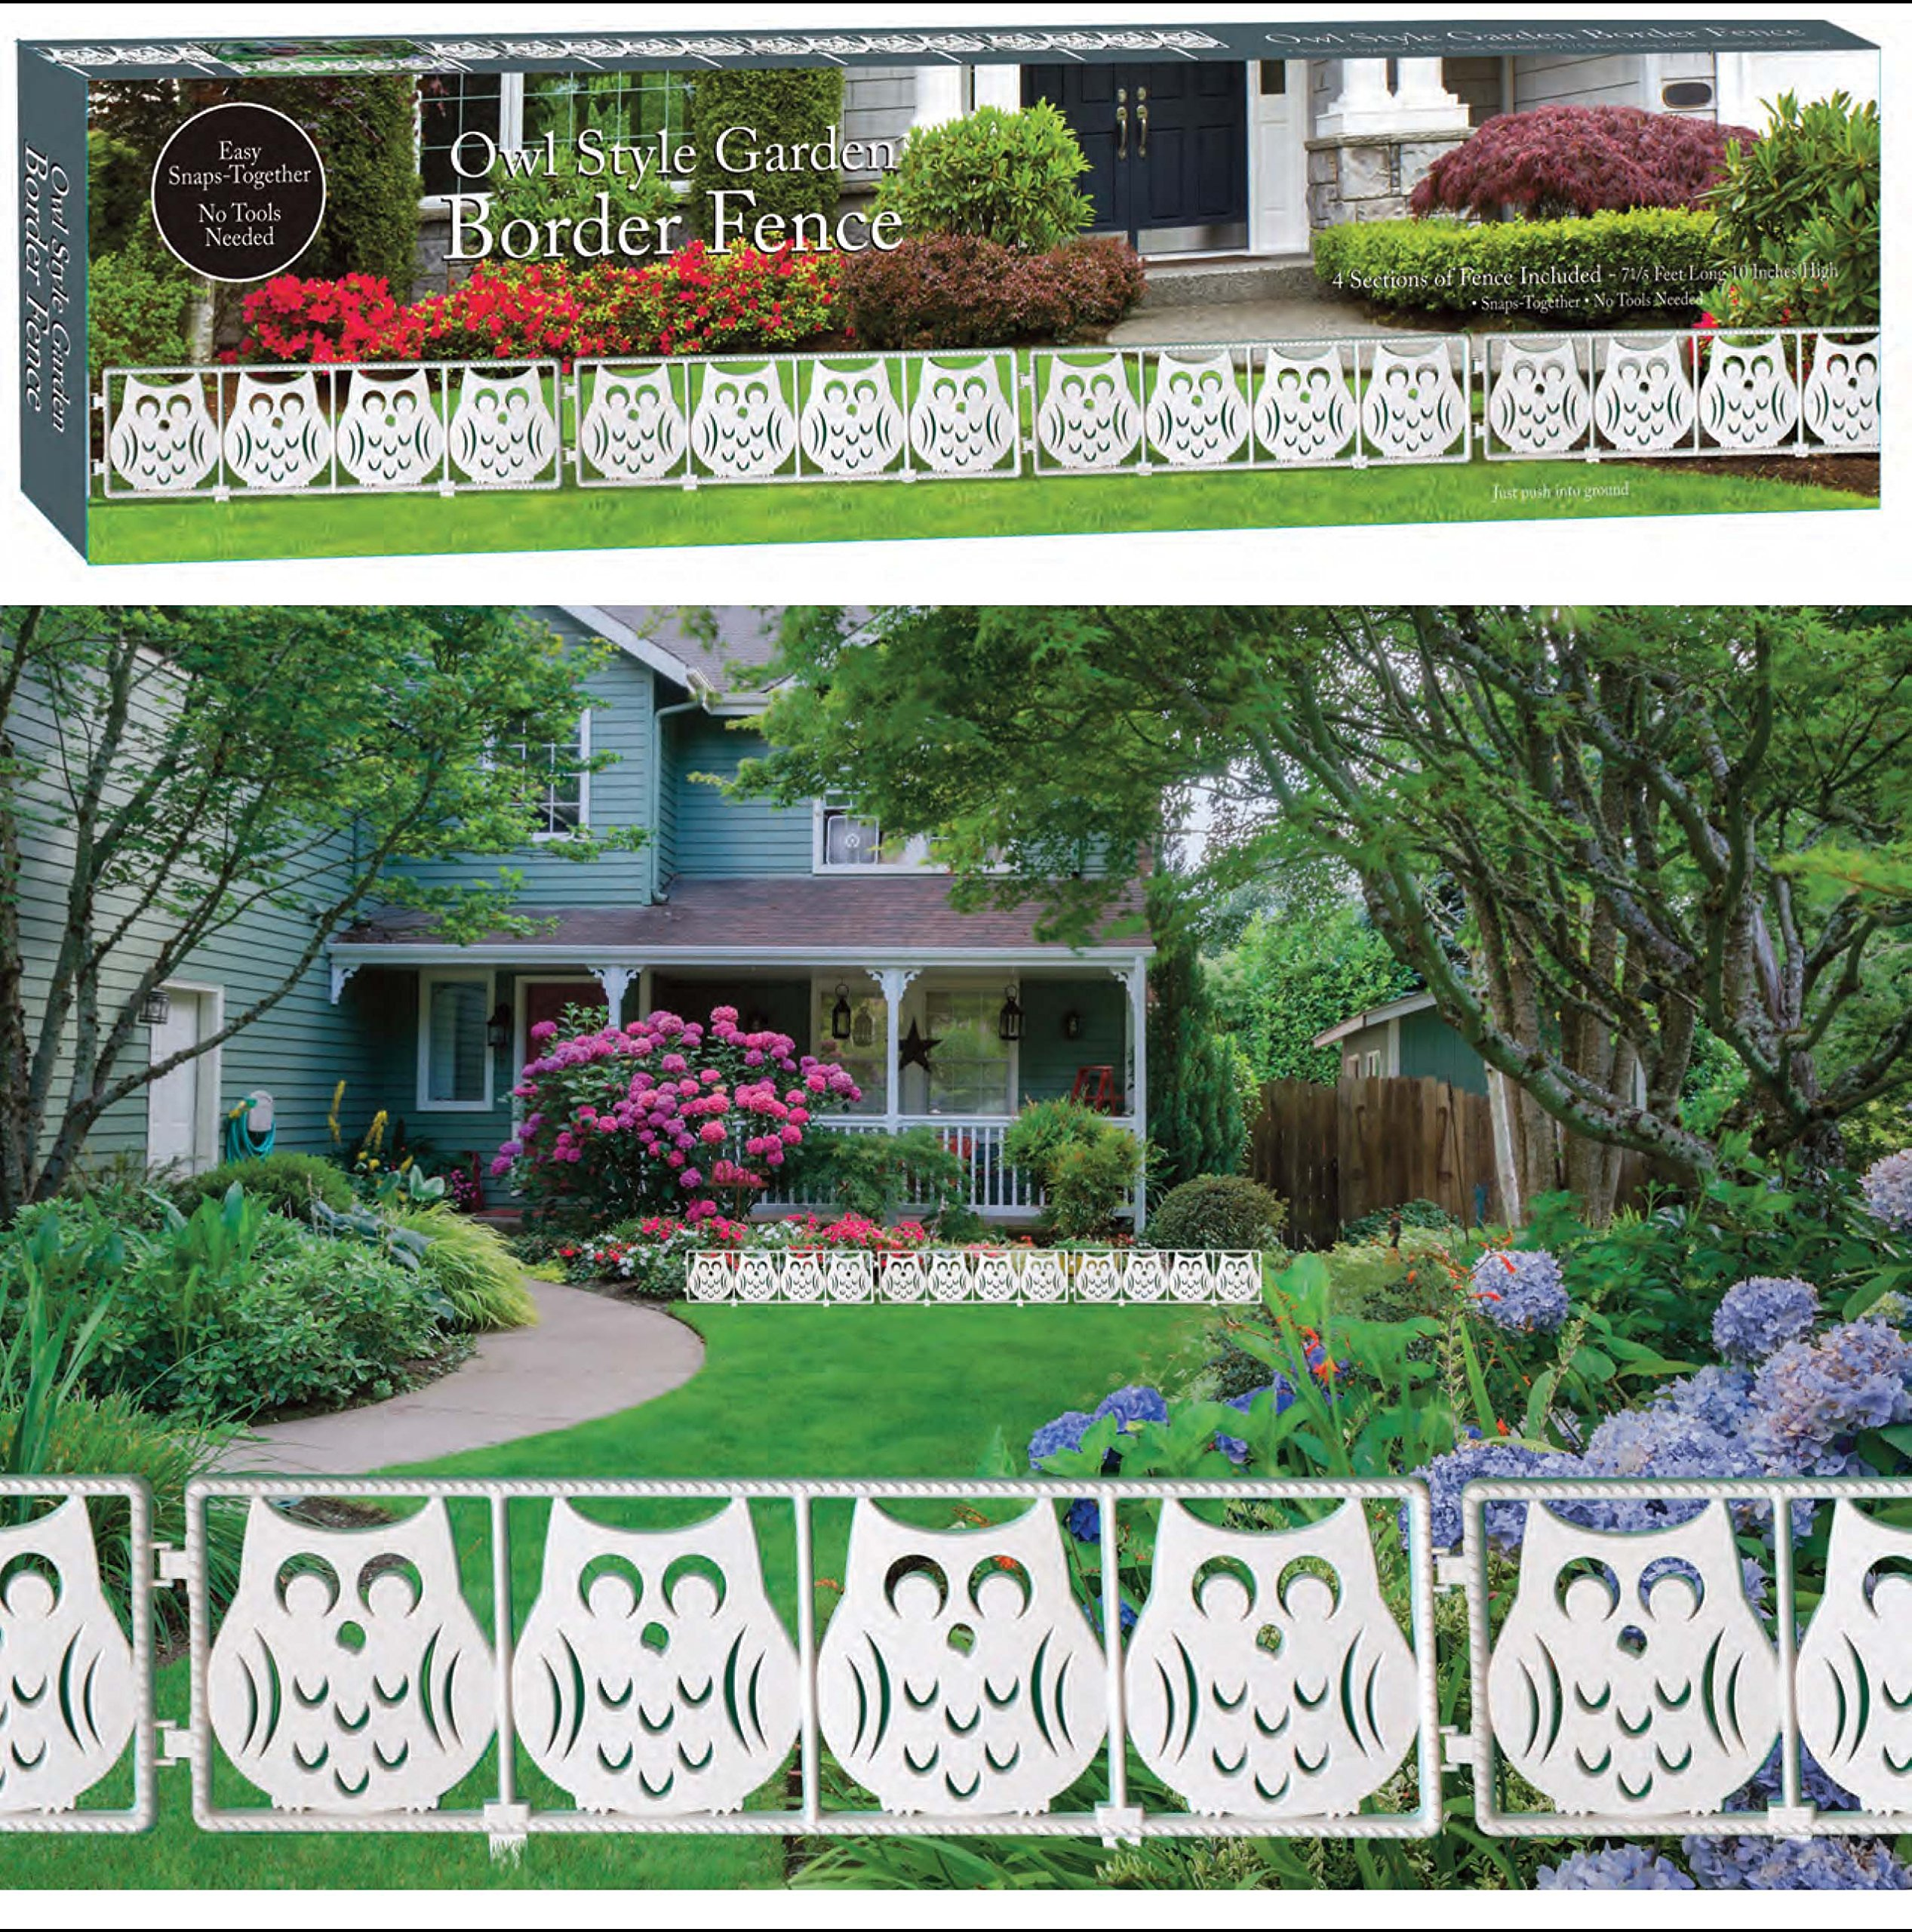 Verstaile Snap Together Owl Style Border Fence - Over 7 Feet Long!